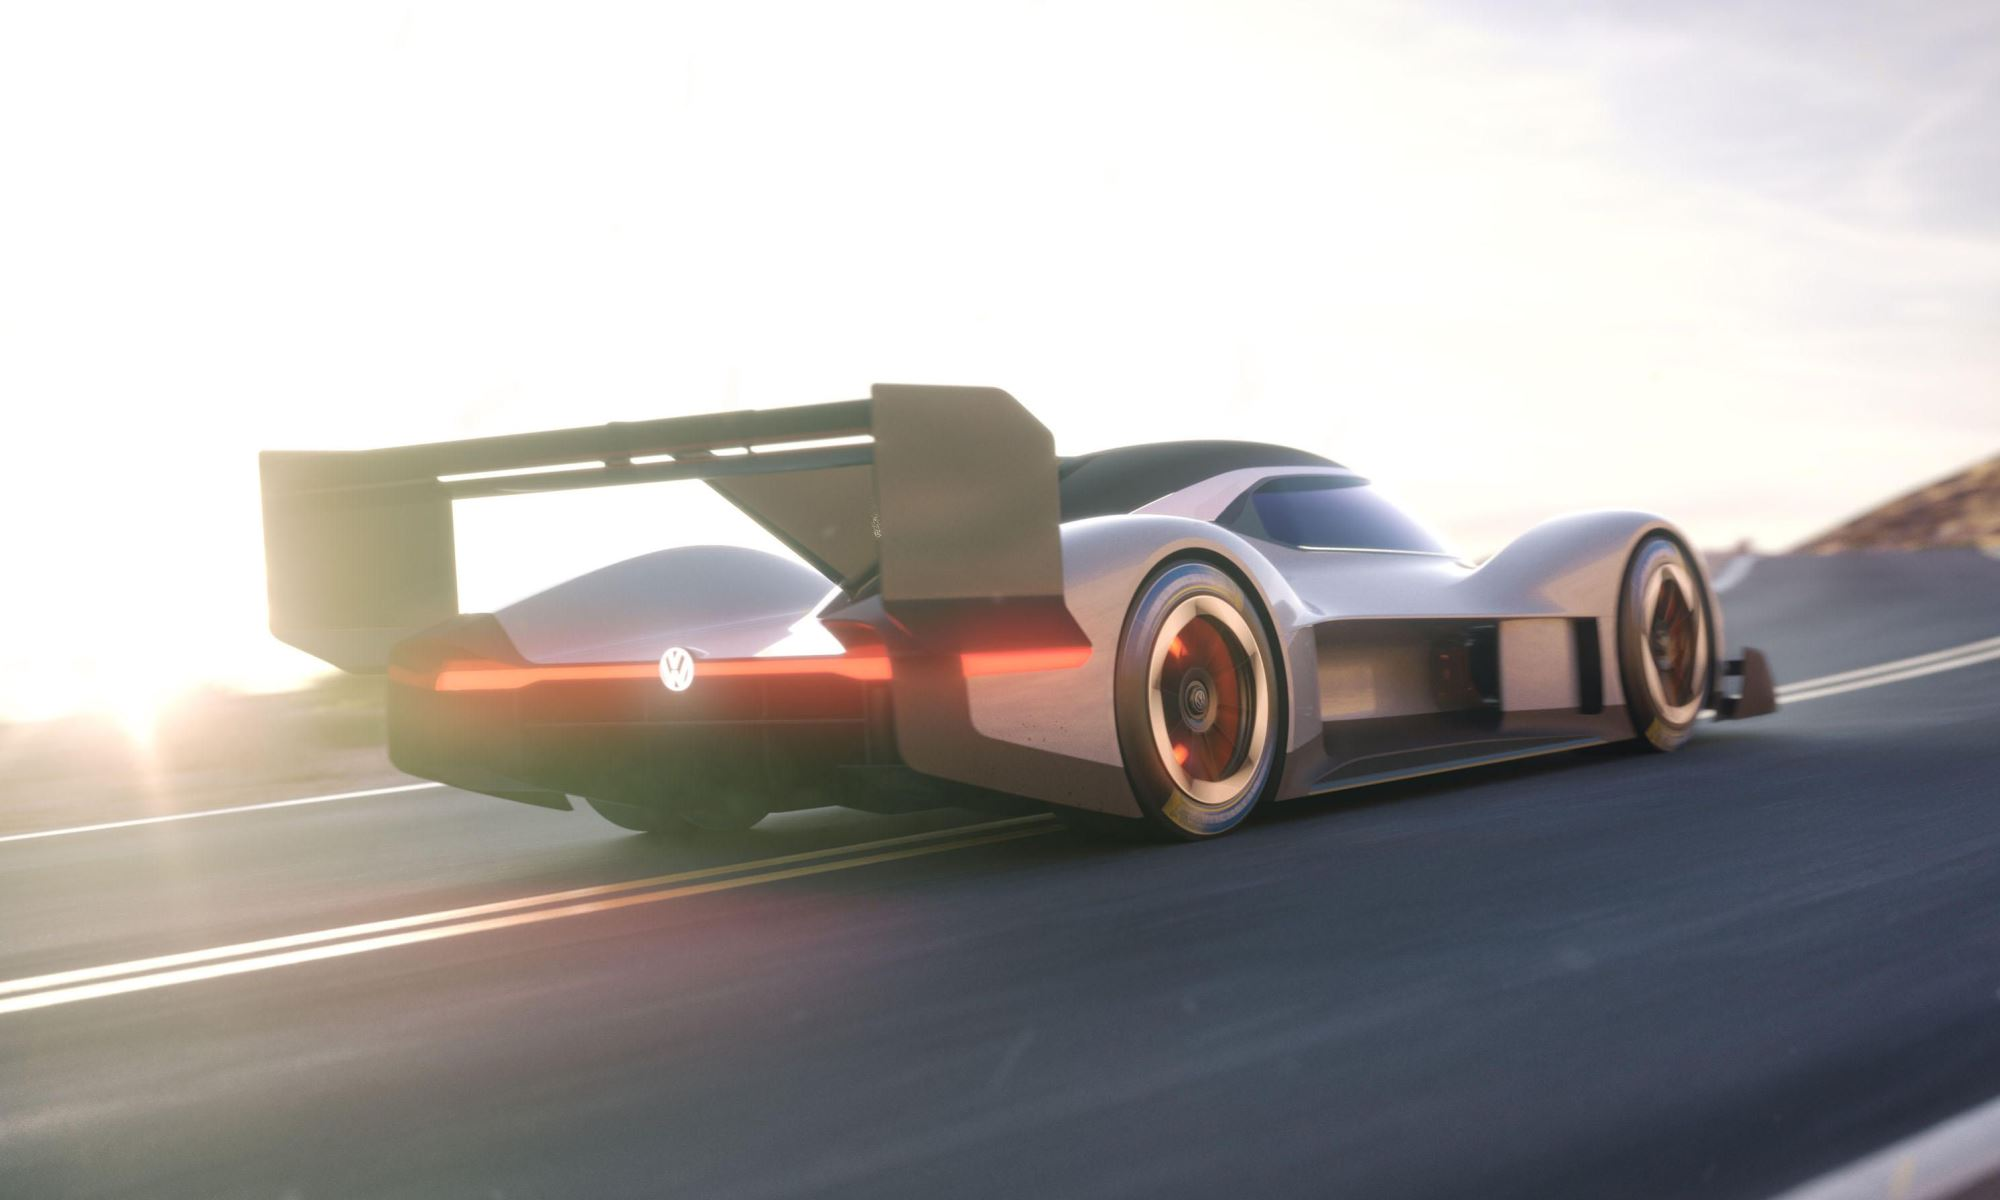 VW ID R Pikes Peak racer rear